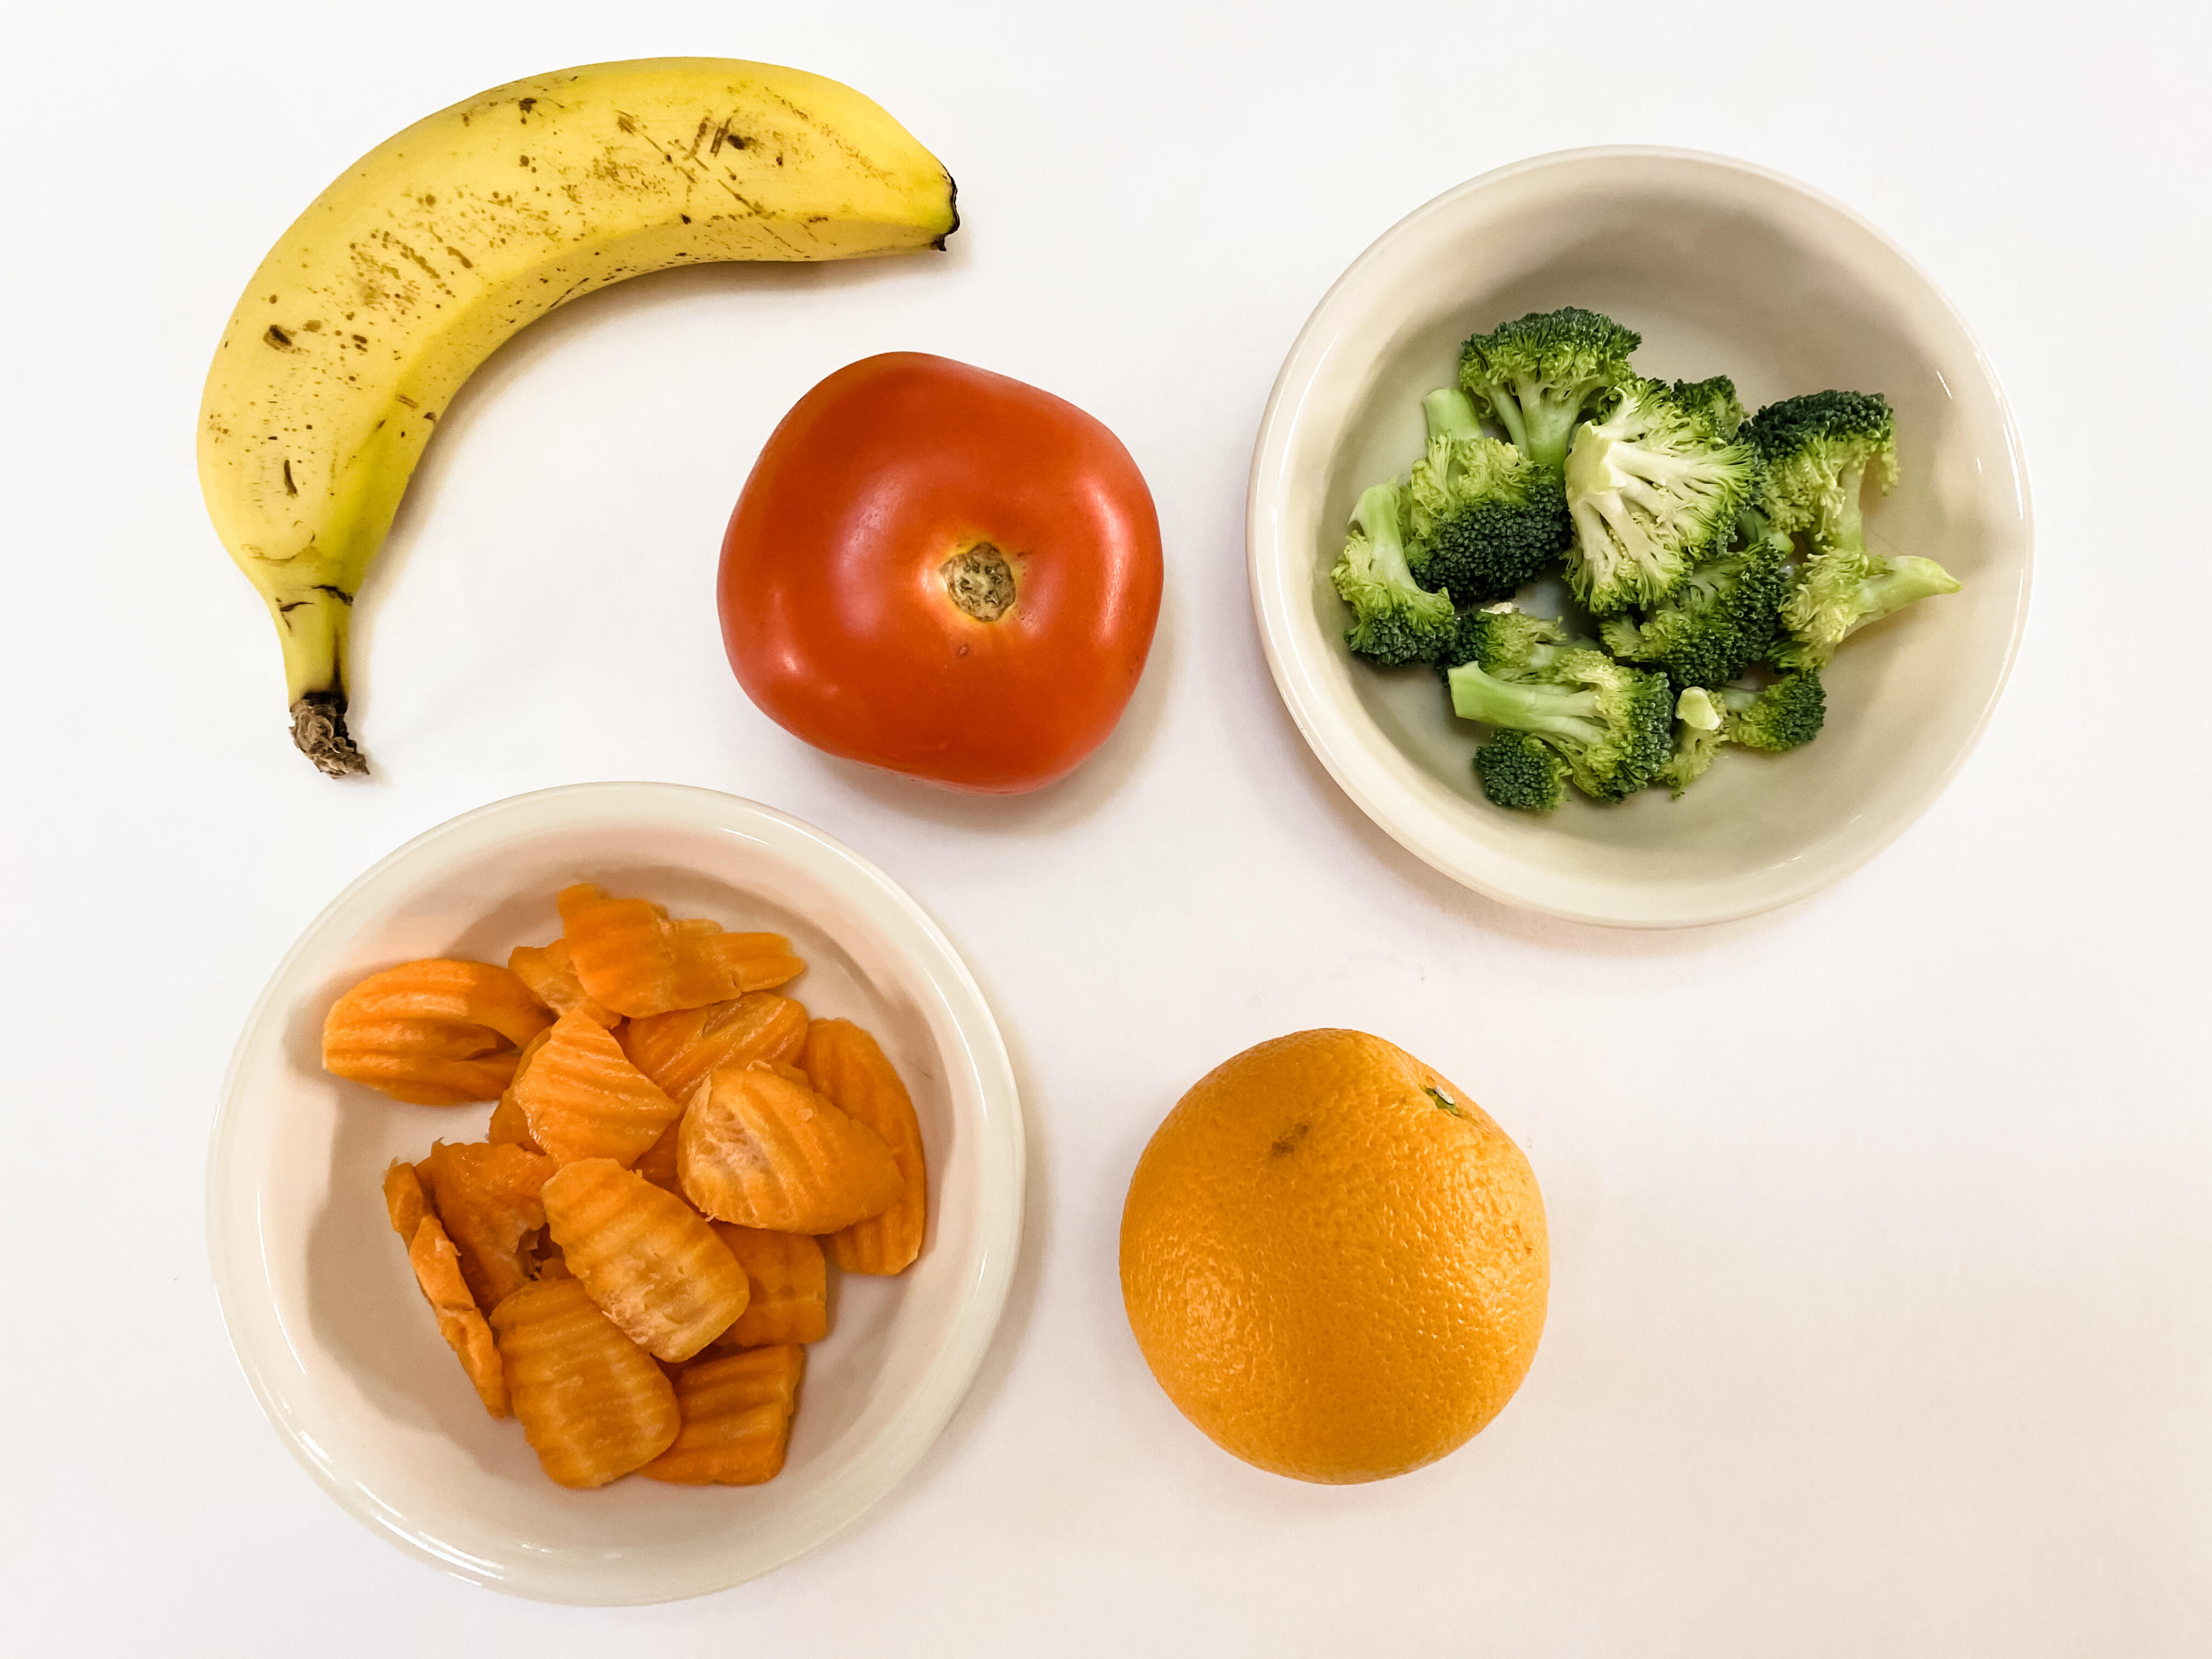 Five servings of produce: one medium banana, one tomato, one orange, a half cup of broccoli and a half cup of carrots.